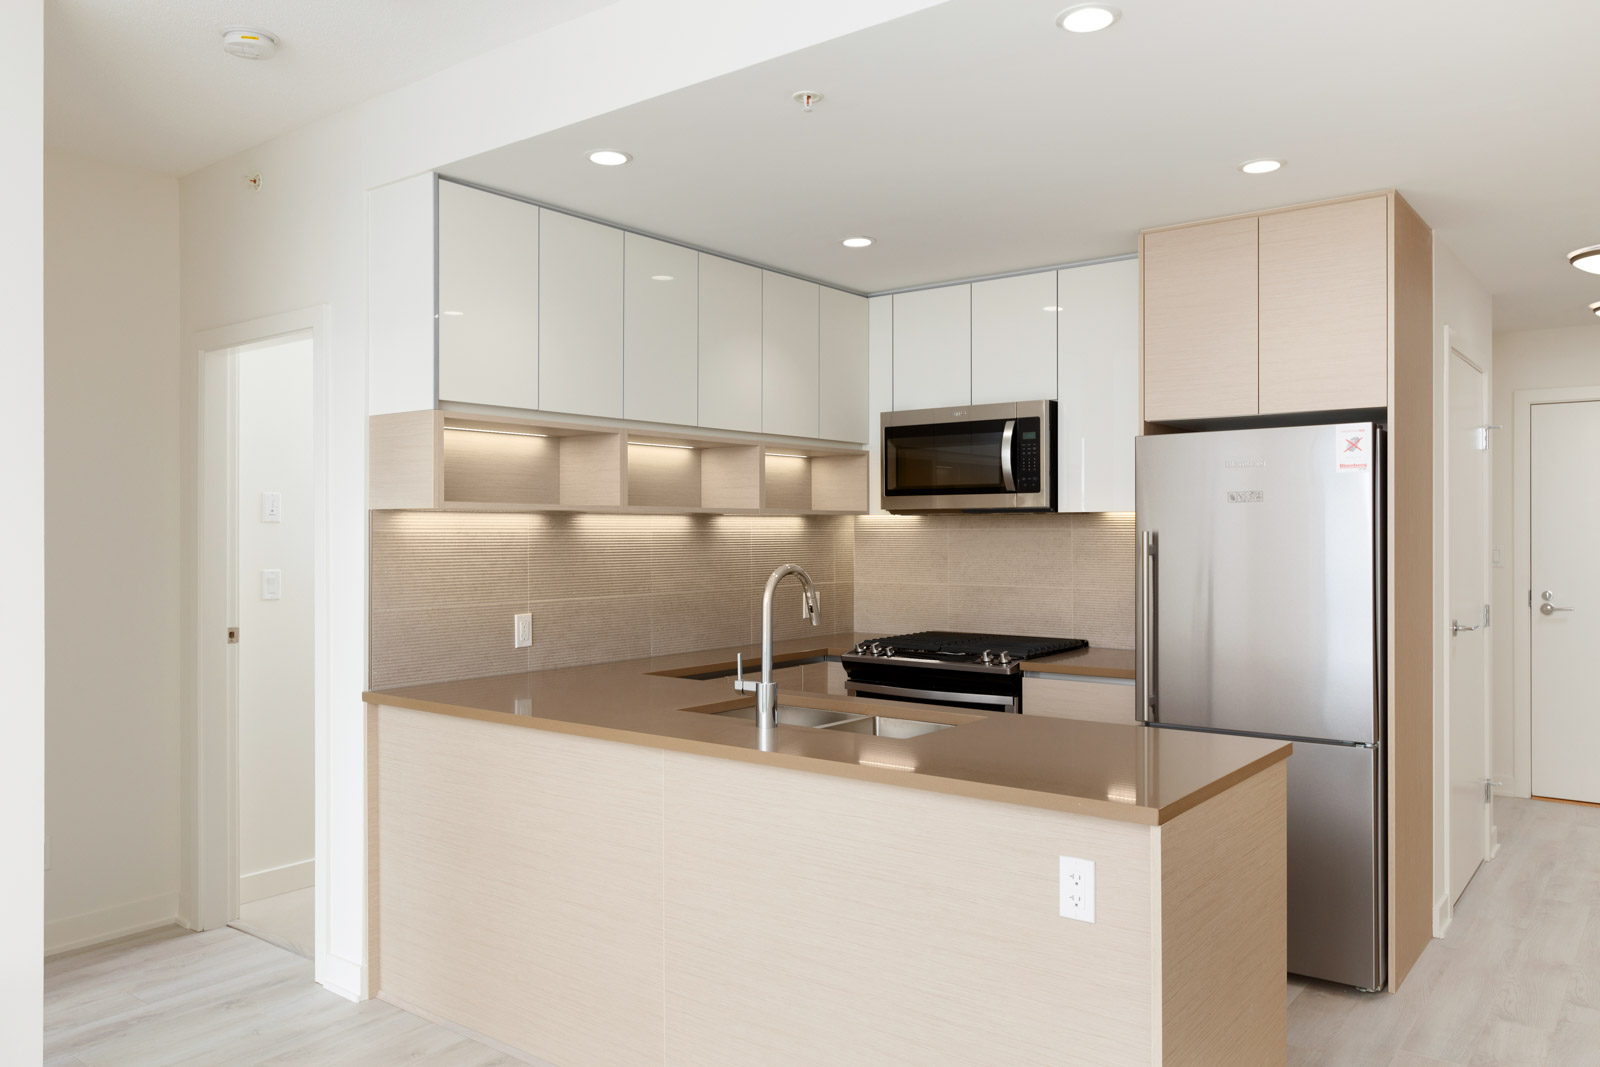 Newly built kitchen with oak and white cabinetry from Burnaby Mountain condo rental..